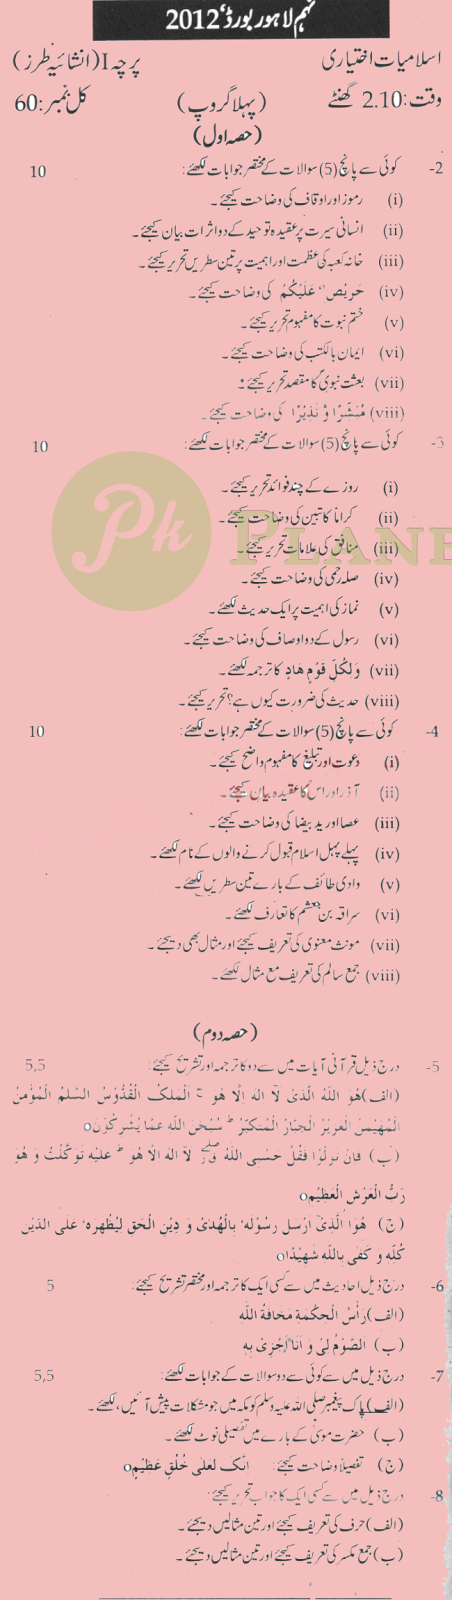 Past Papers of 9th Class Lahore Board 2012 Islamiat Elective